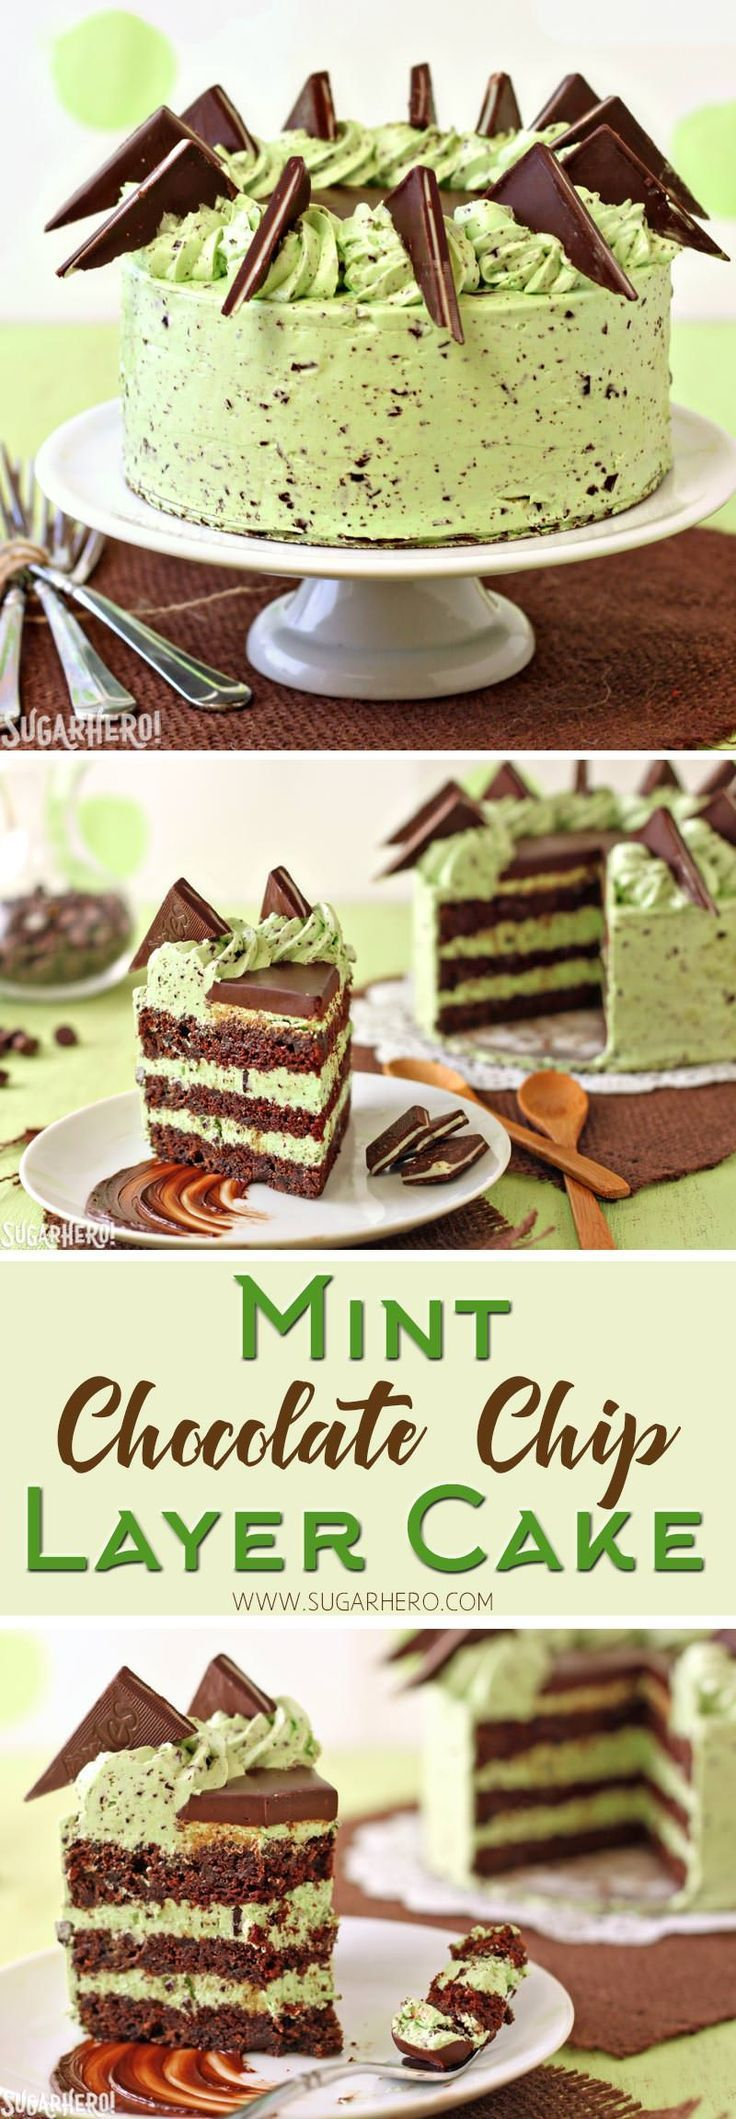 Mint Chocolate Chip Layer Cake - chocolate cake with Andes mints and a DELICIOUS mint chip frosting! | From http://SugarHero.com